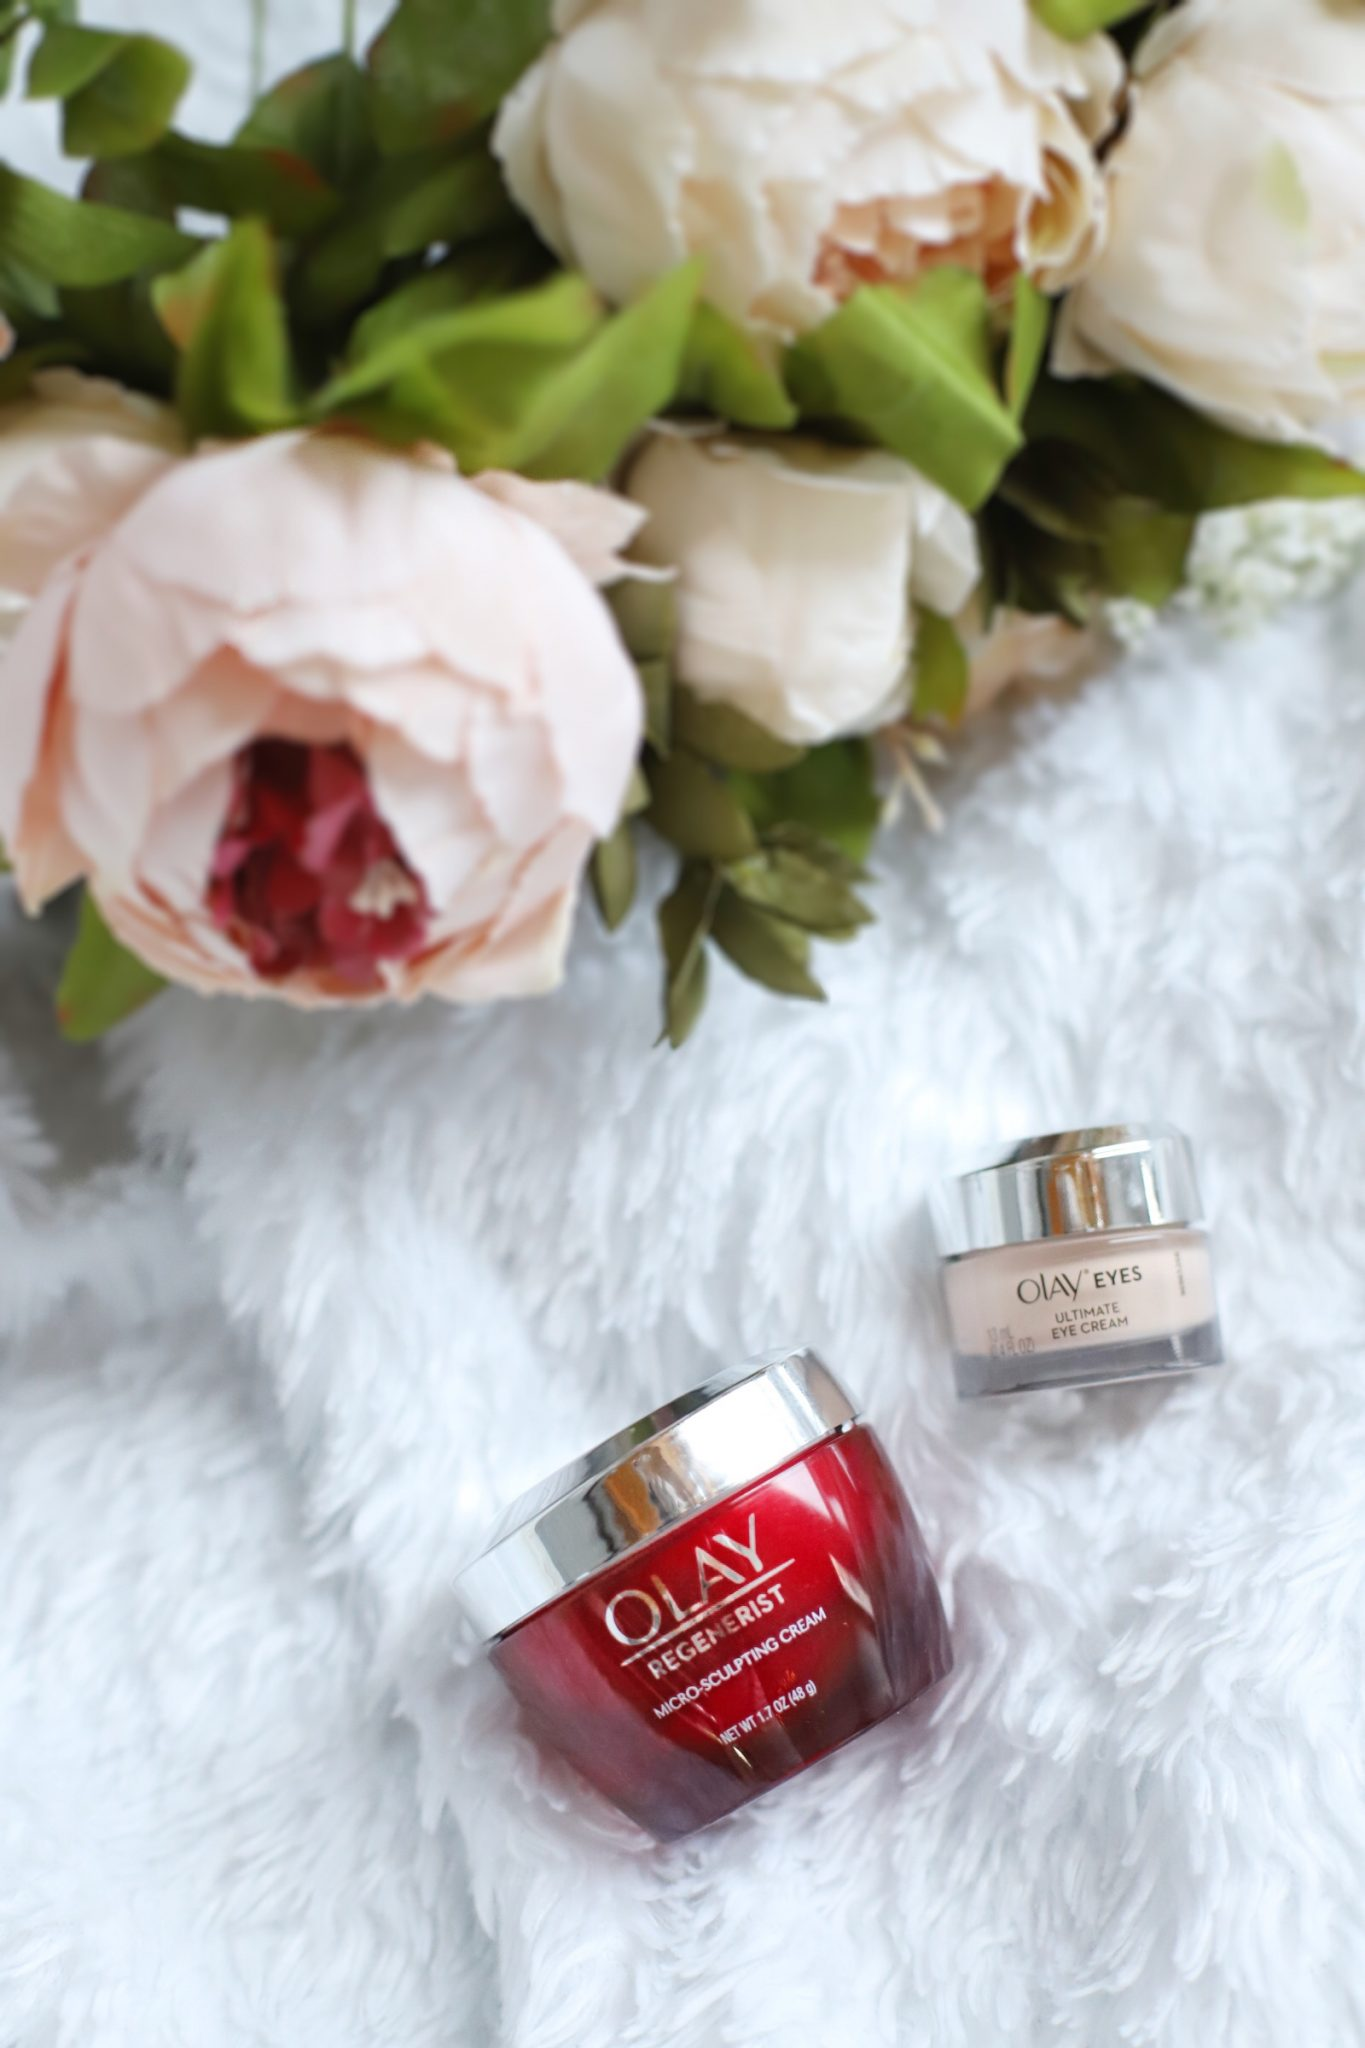 Olay 28 day challenge, #olay28day challenge, olay regenerist micro sculpting cream review, olay eyes eye cream review, skin care routine, olay 28 day challenge before and after